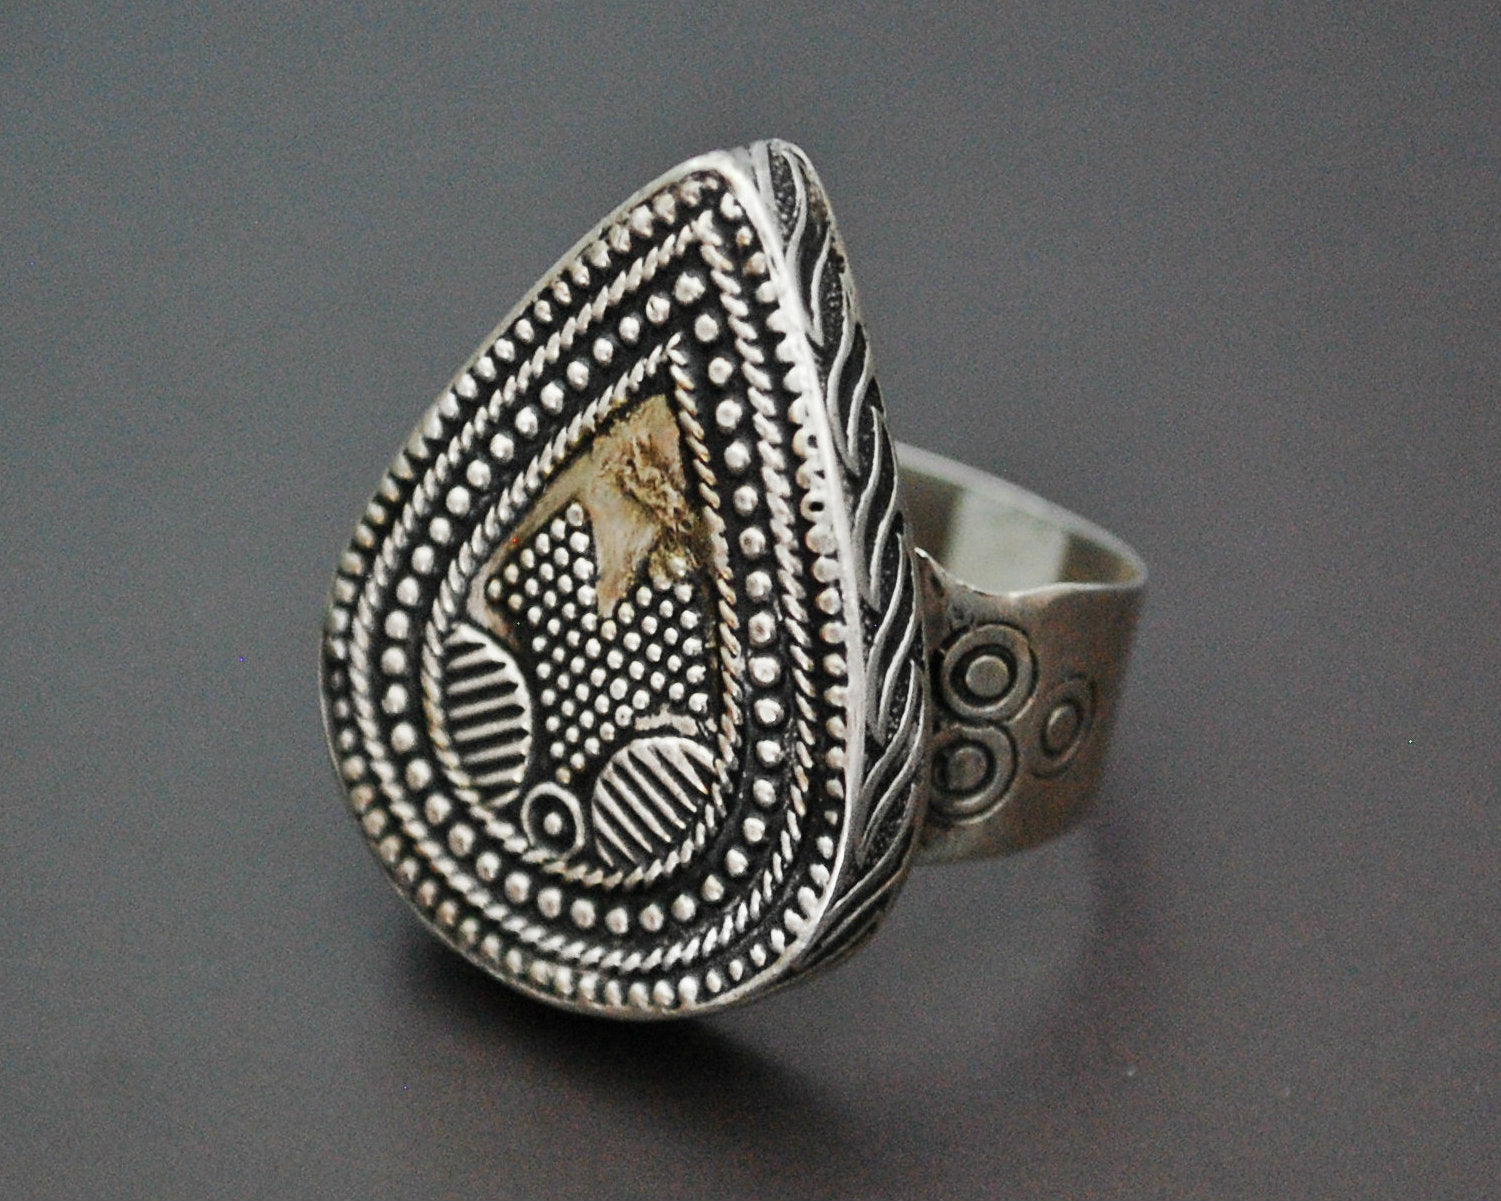 Kazakh Silver Gilded Ring - Size 7.75 / 8